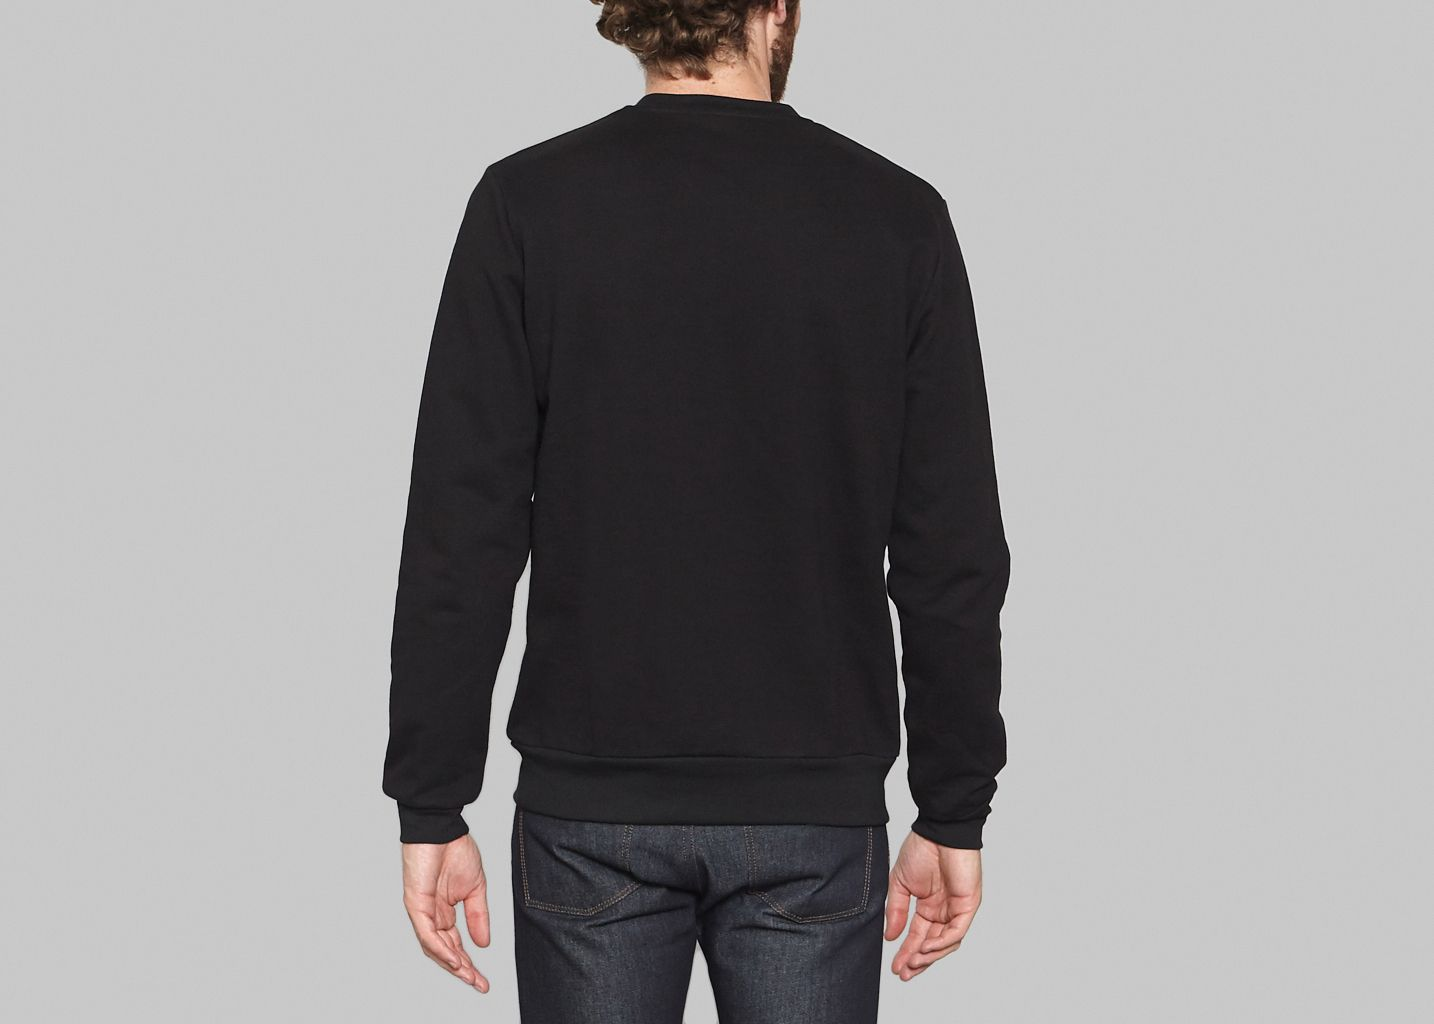 Archive Griffe Sweatshirt - Ly Adams